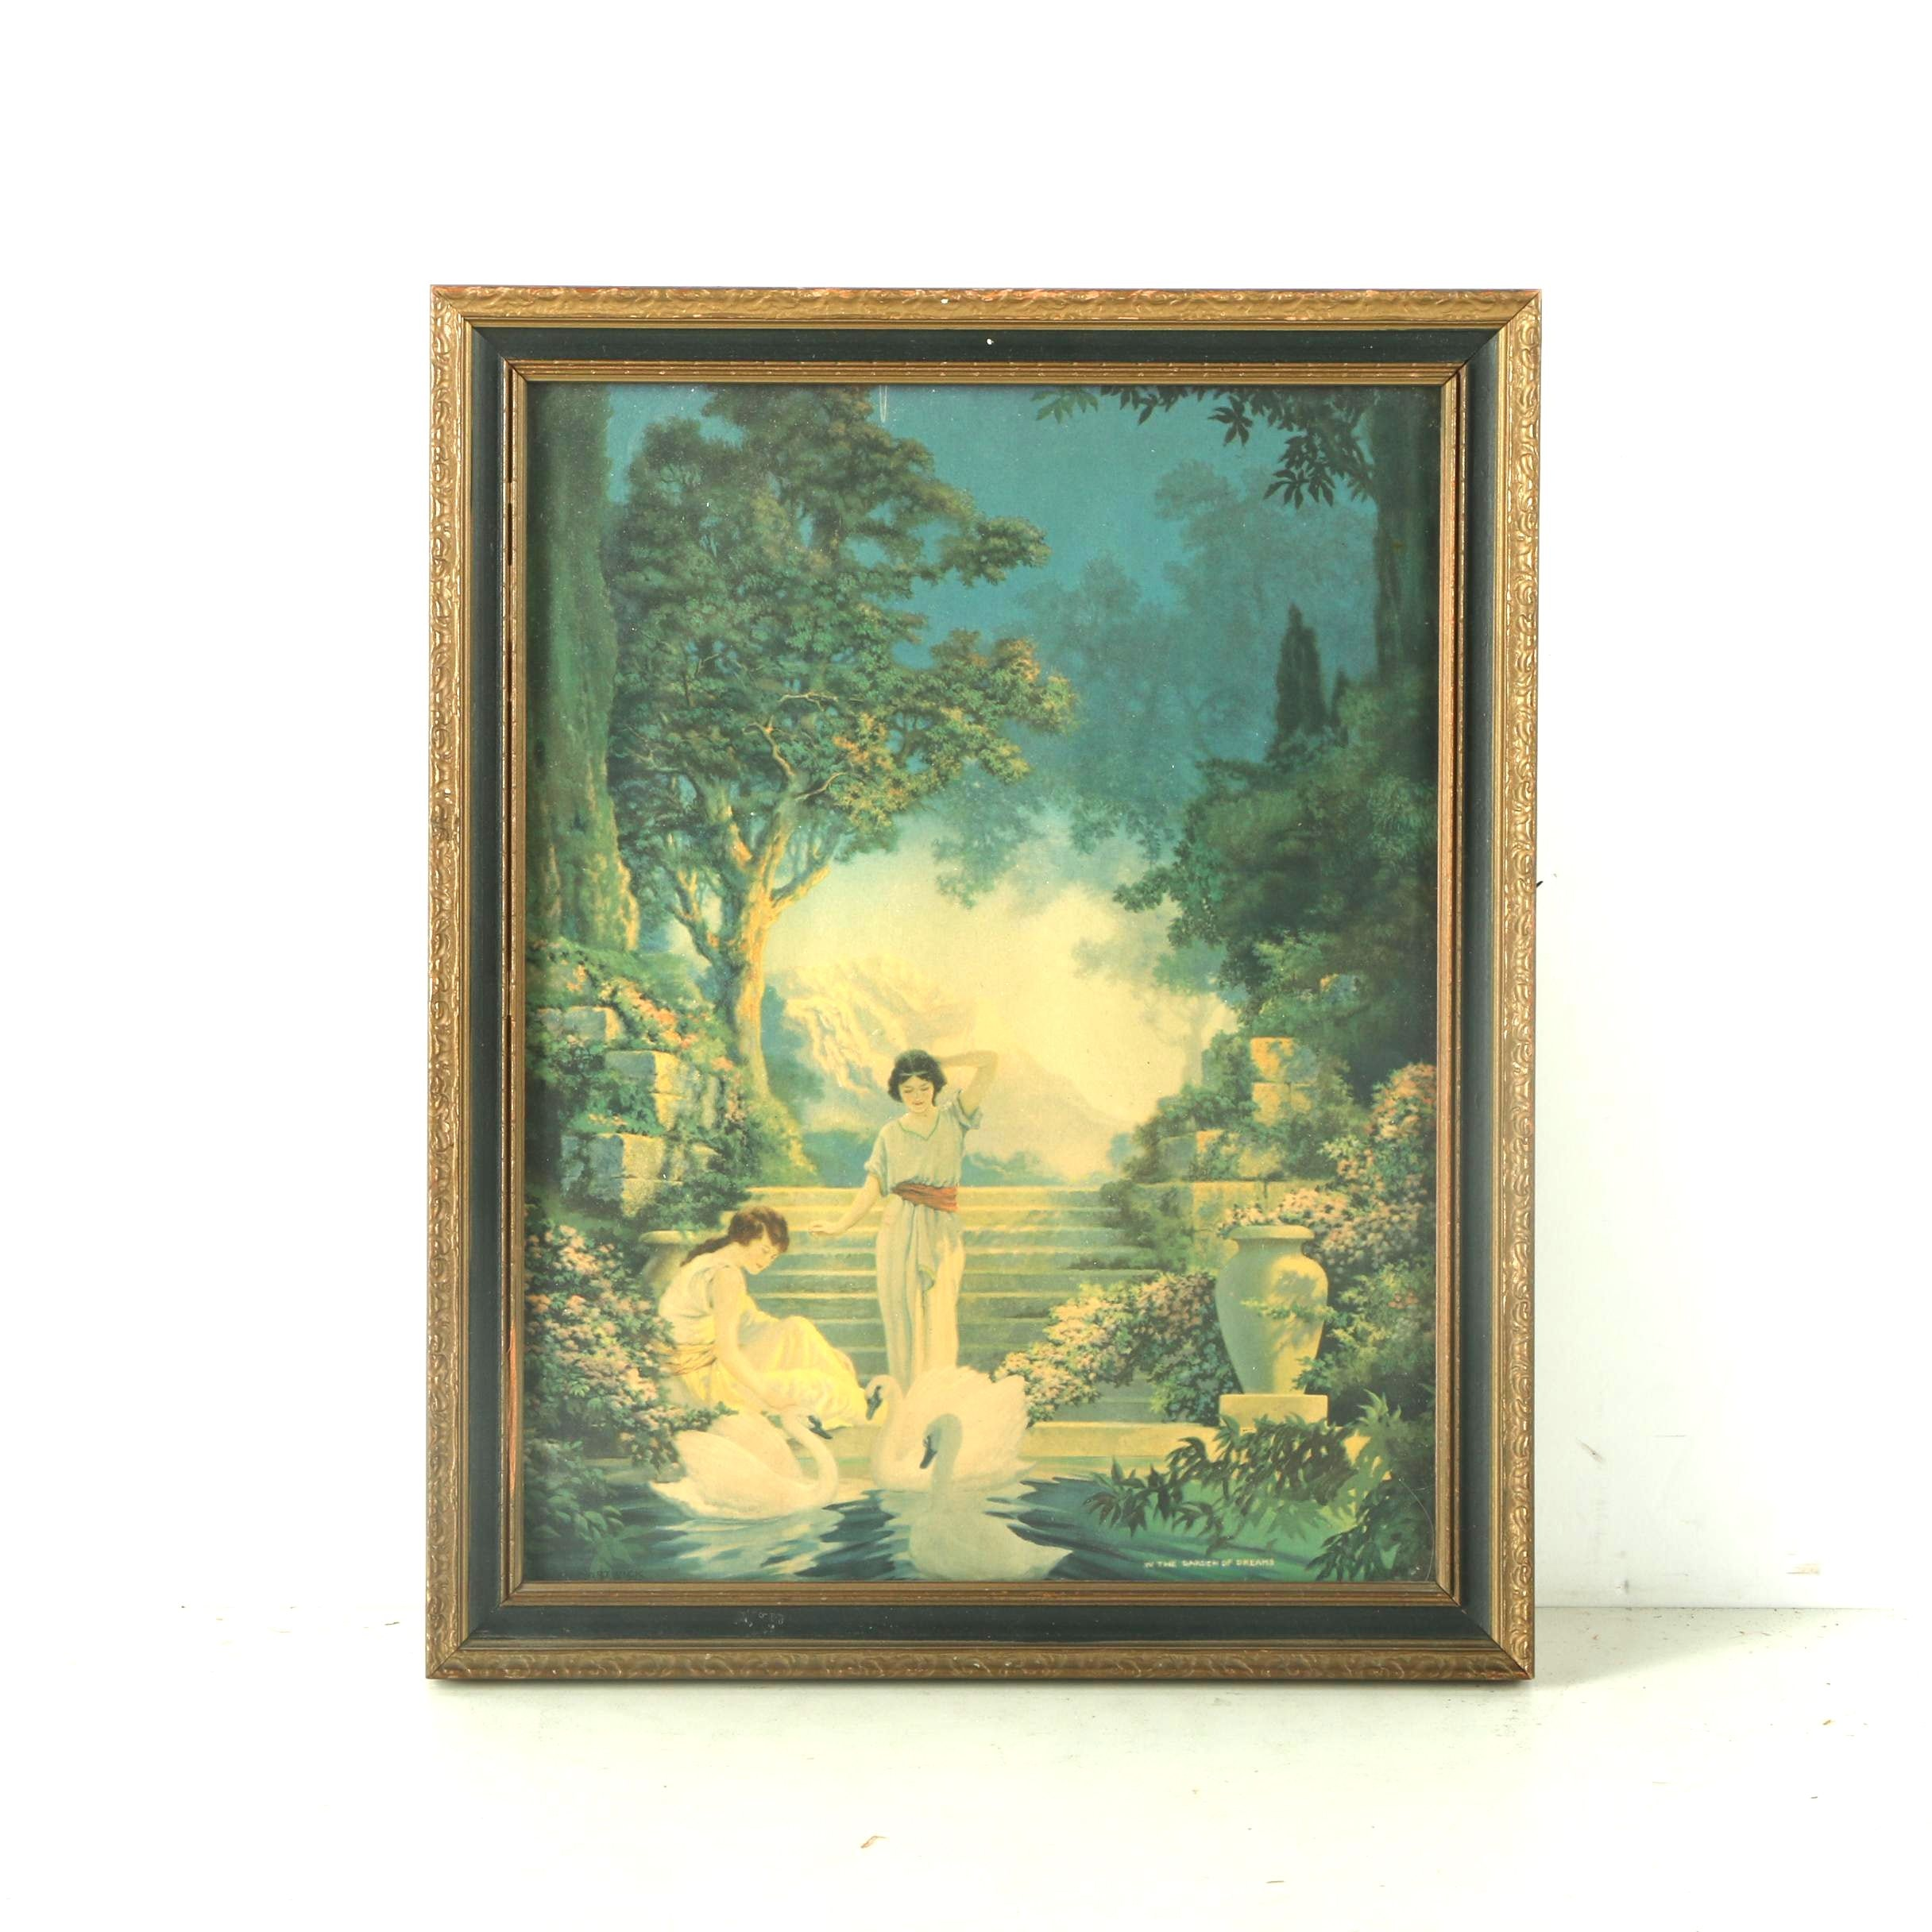 """Offset Lithograph After C.K. Van Nortwick """"In the Garden of Dreams"""""""